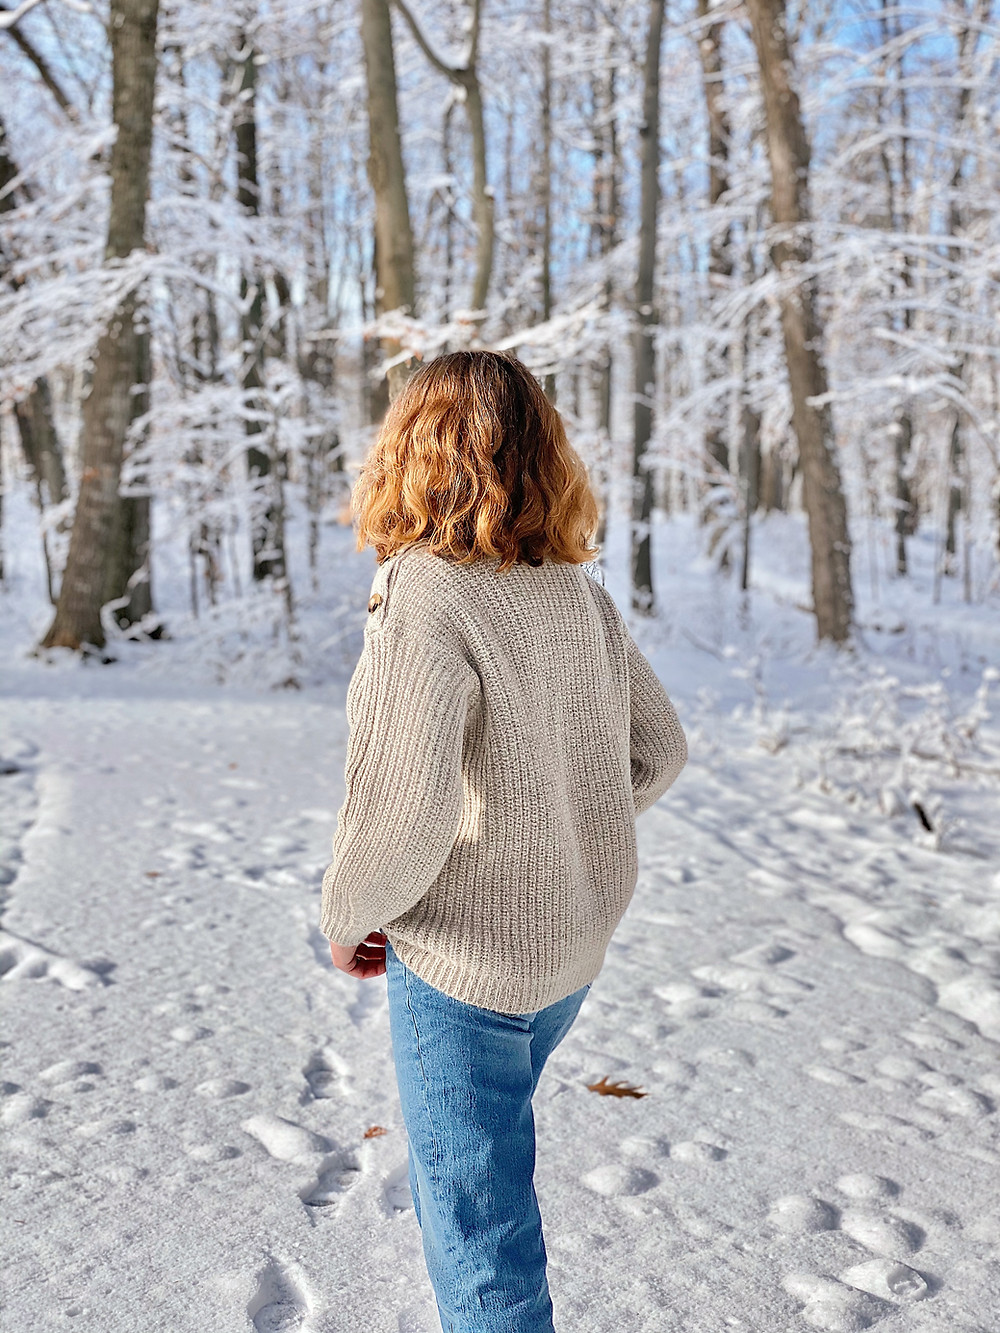 woman in snow covered forest